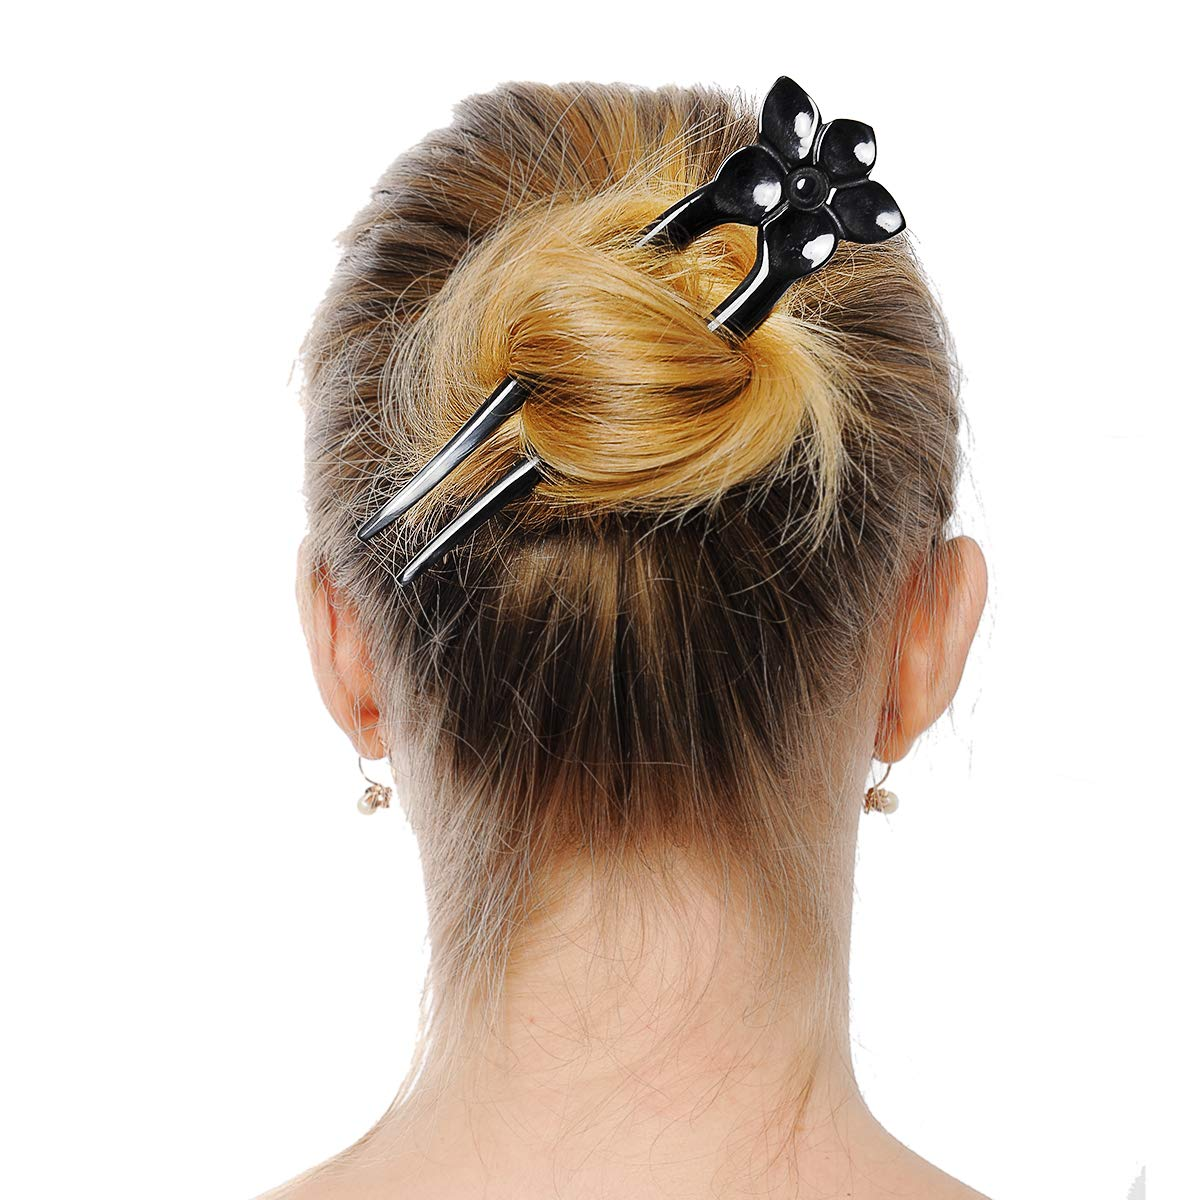 Details about  /MARYCRAFTS WOODEN RAM HAIR FORK HAIR PIN FOR BUNS HAIR ACCESSORIES FOR WOMEN